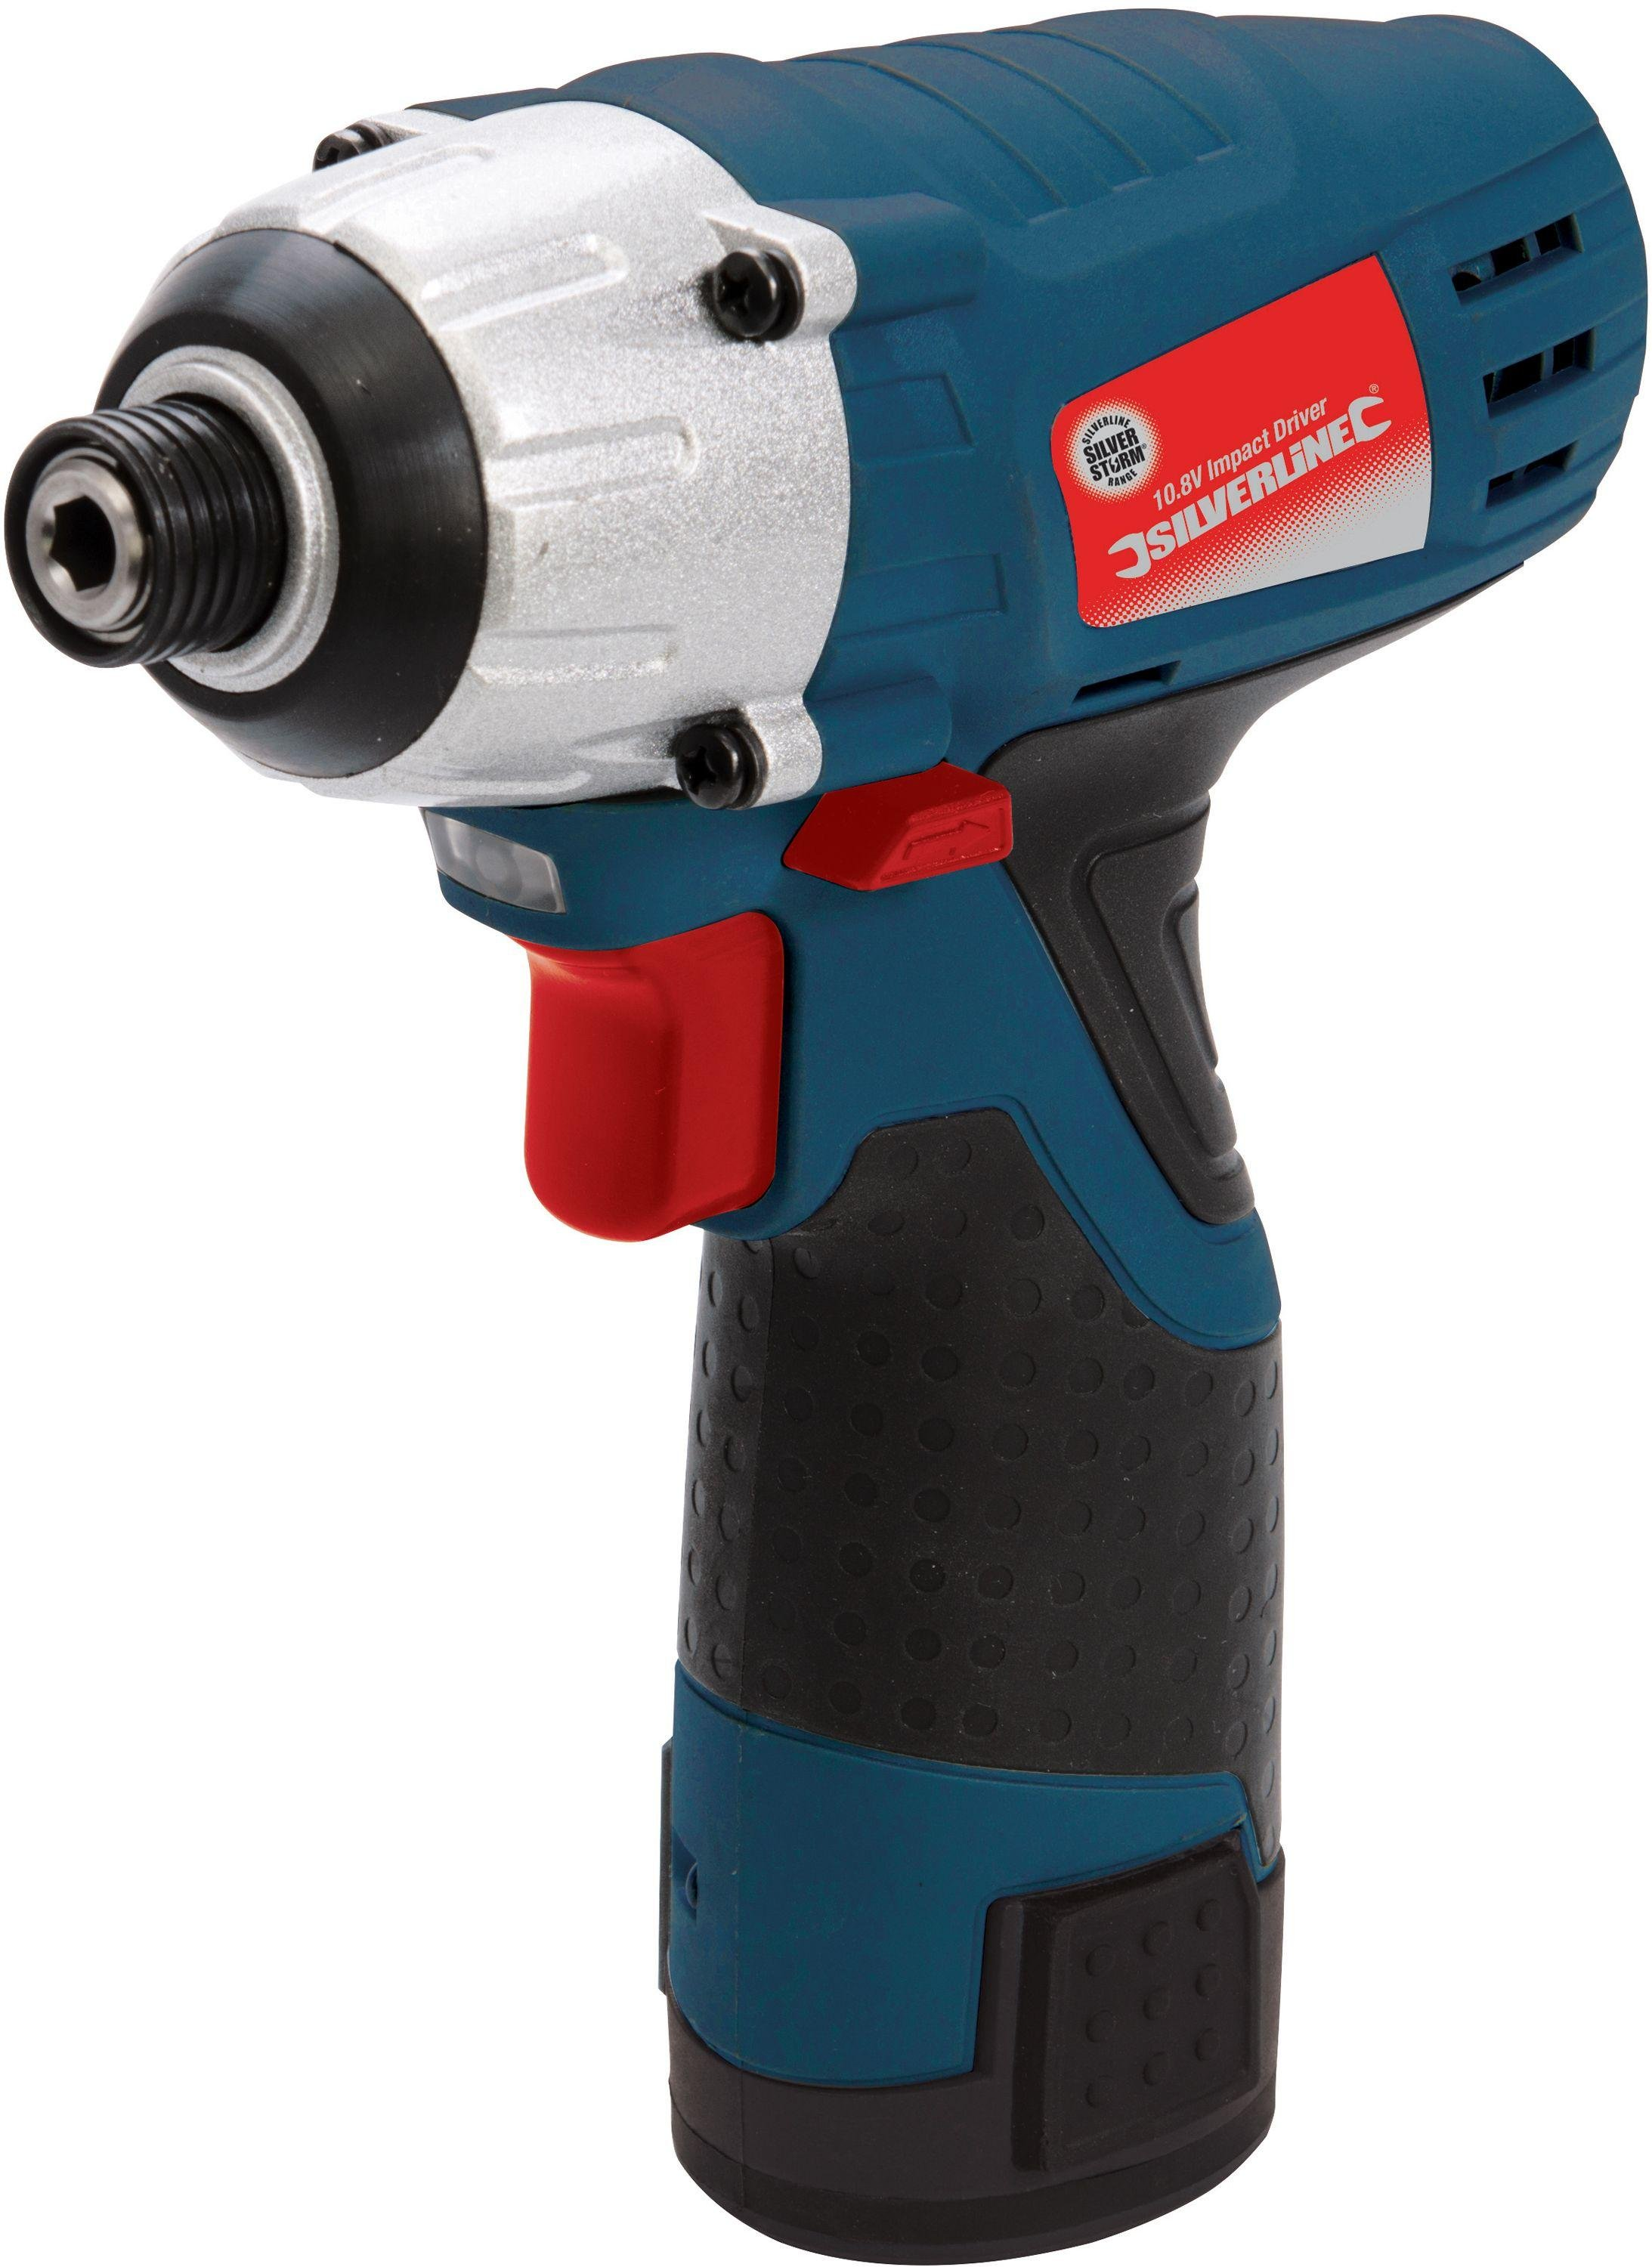 Silverstorm - 108v Impact Driver lowest price